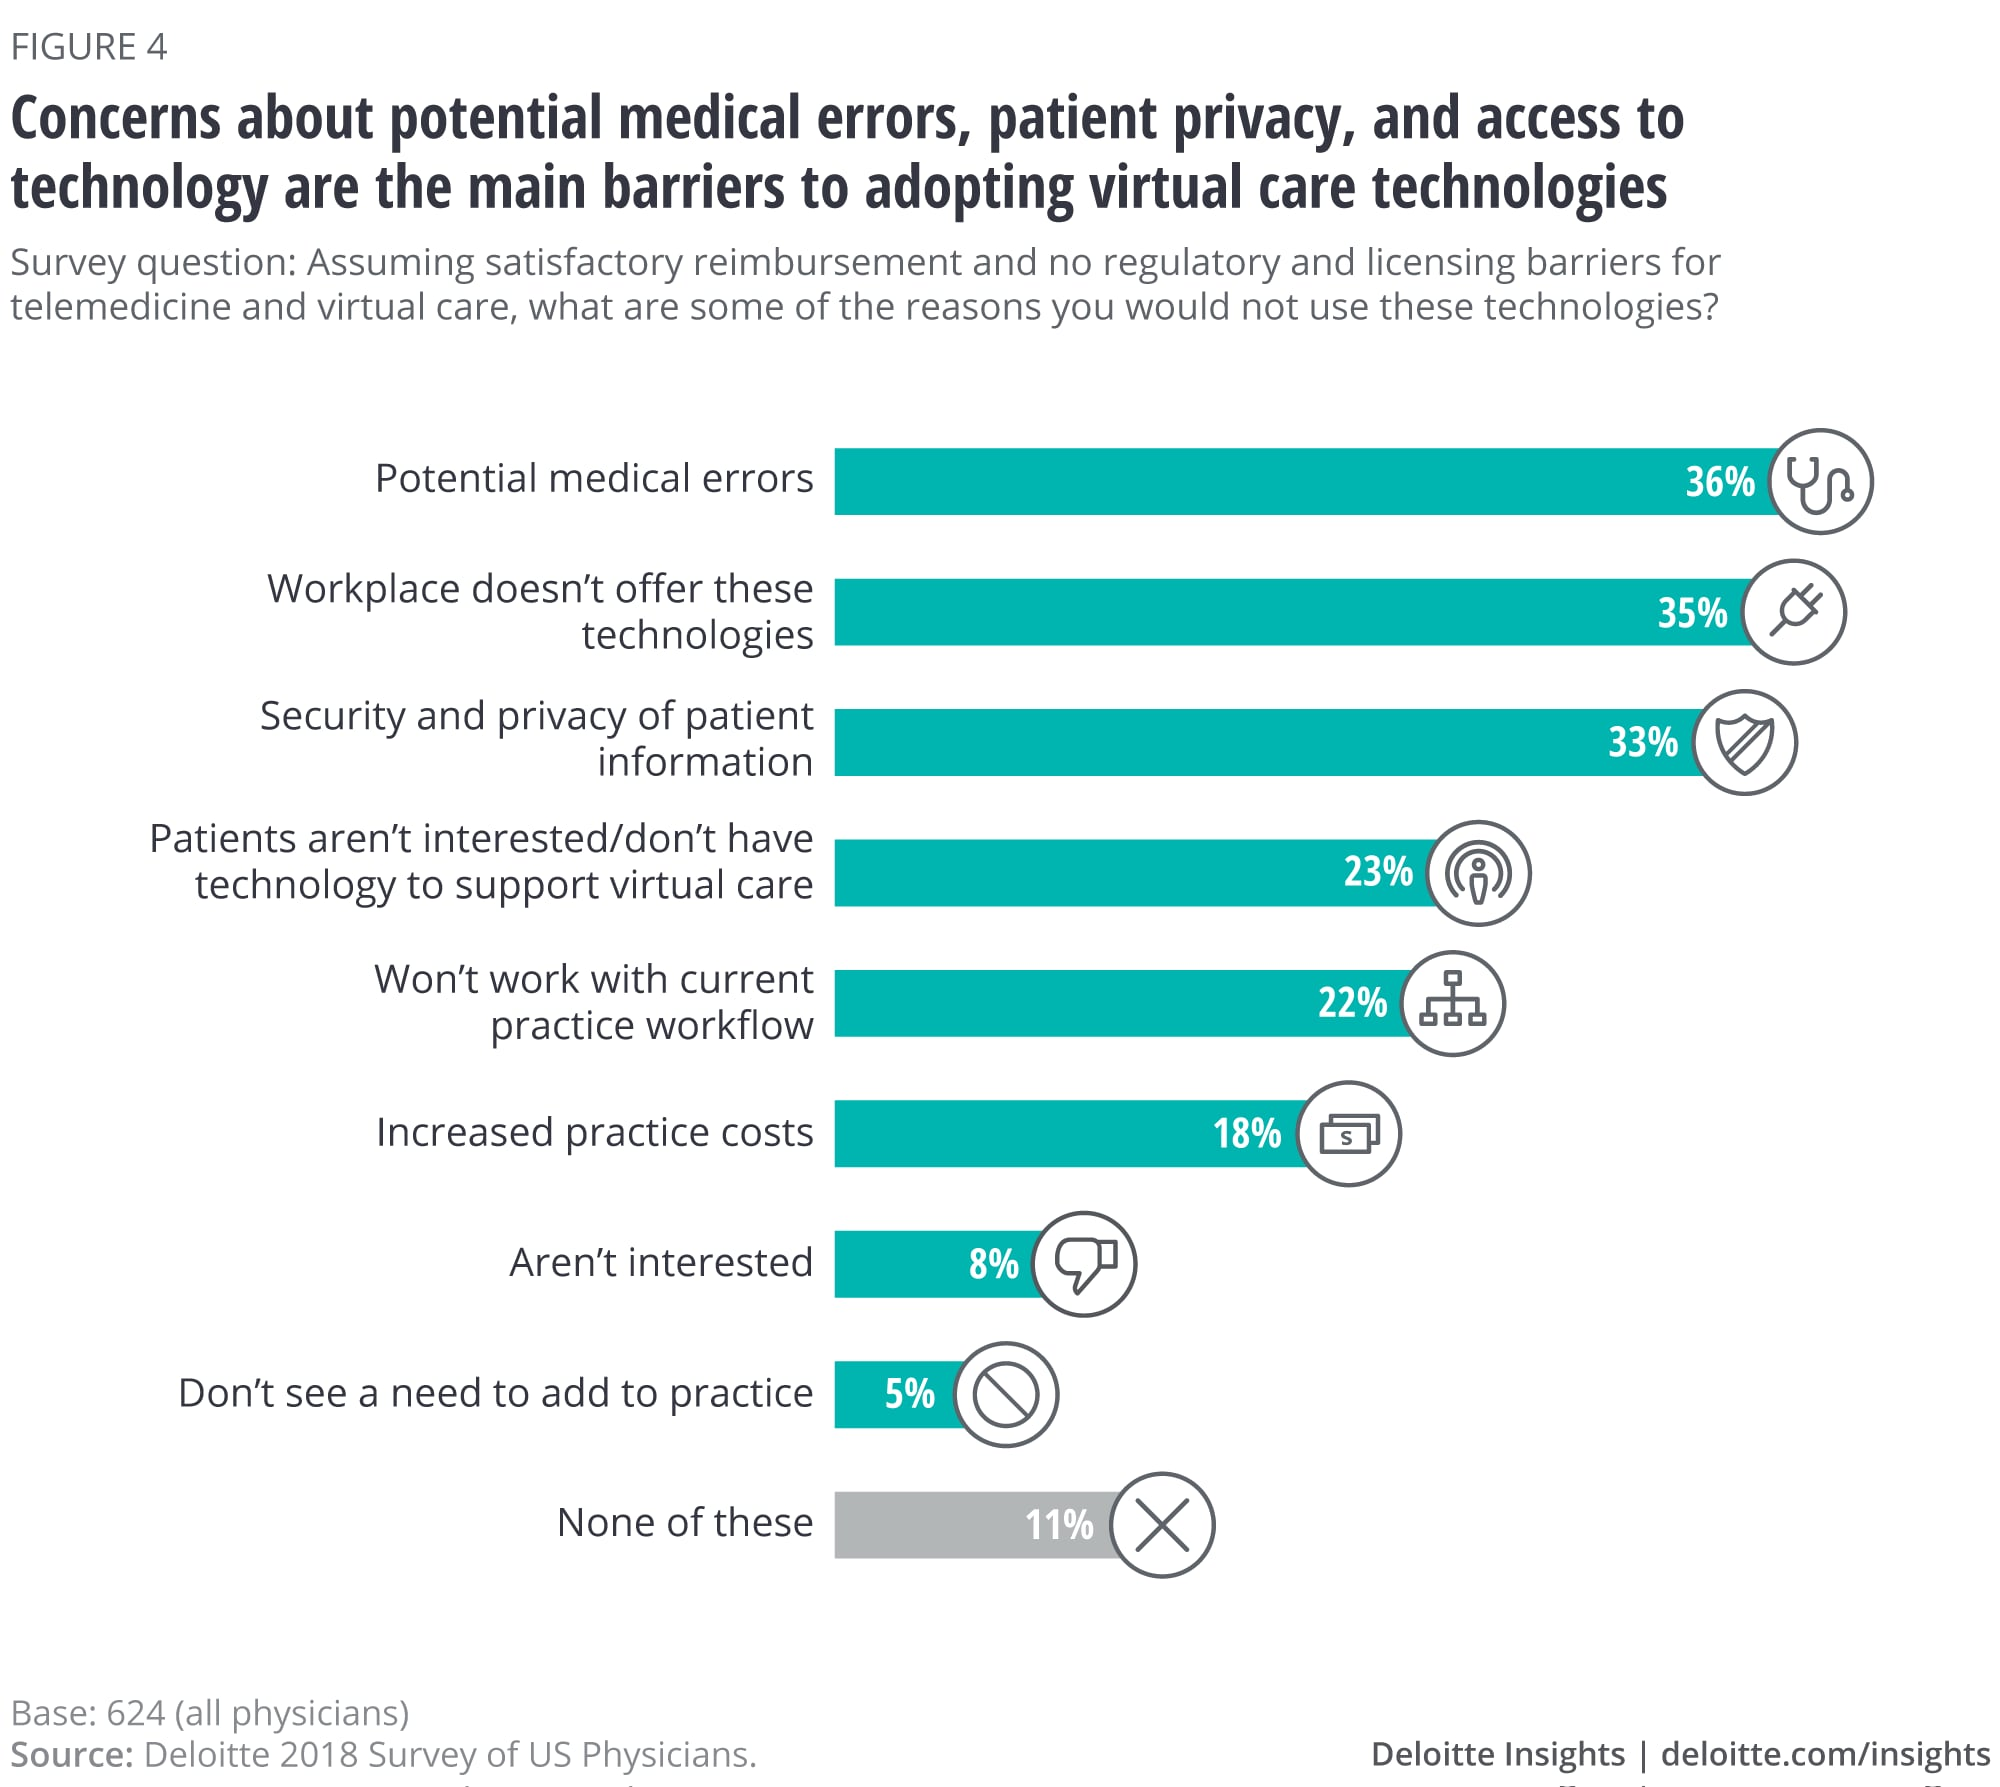 Concerns about potential medical errors, patient privacy, and access to technology are the main barriers to adopting virtual technologies